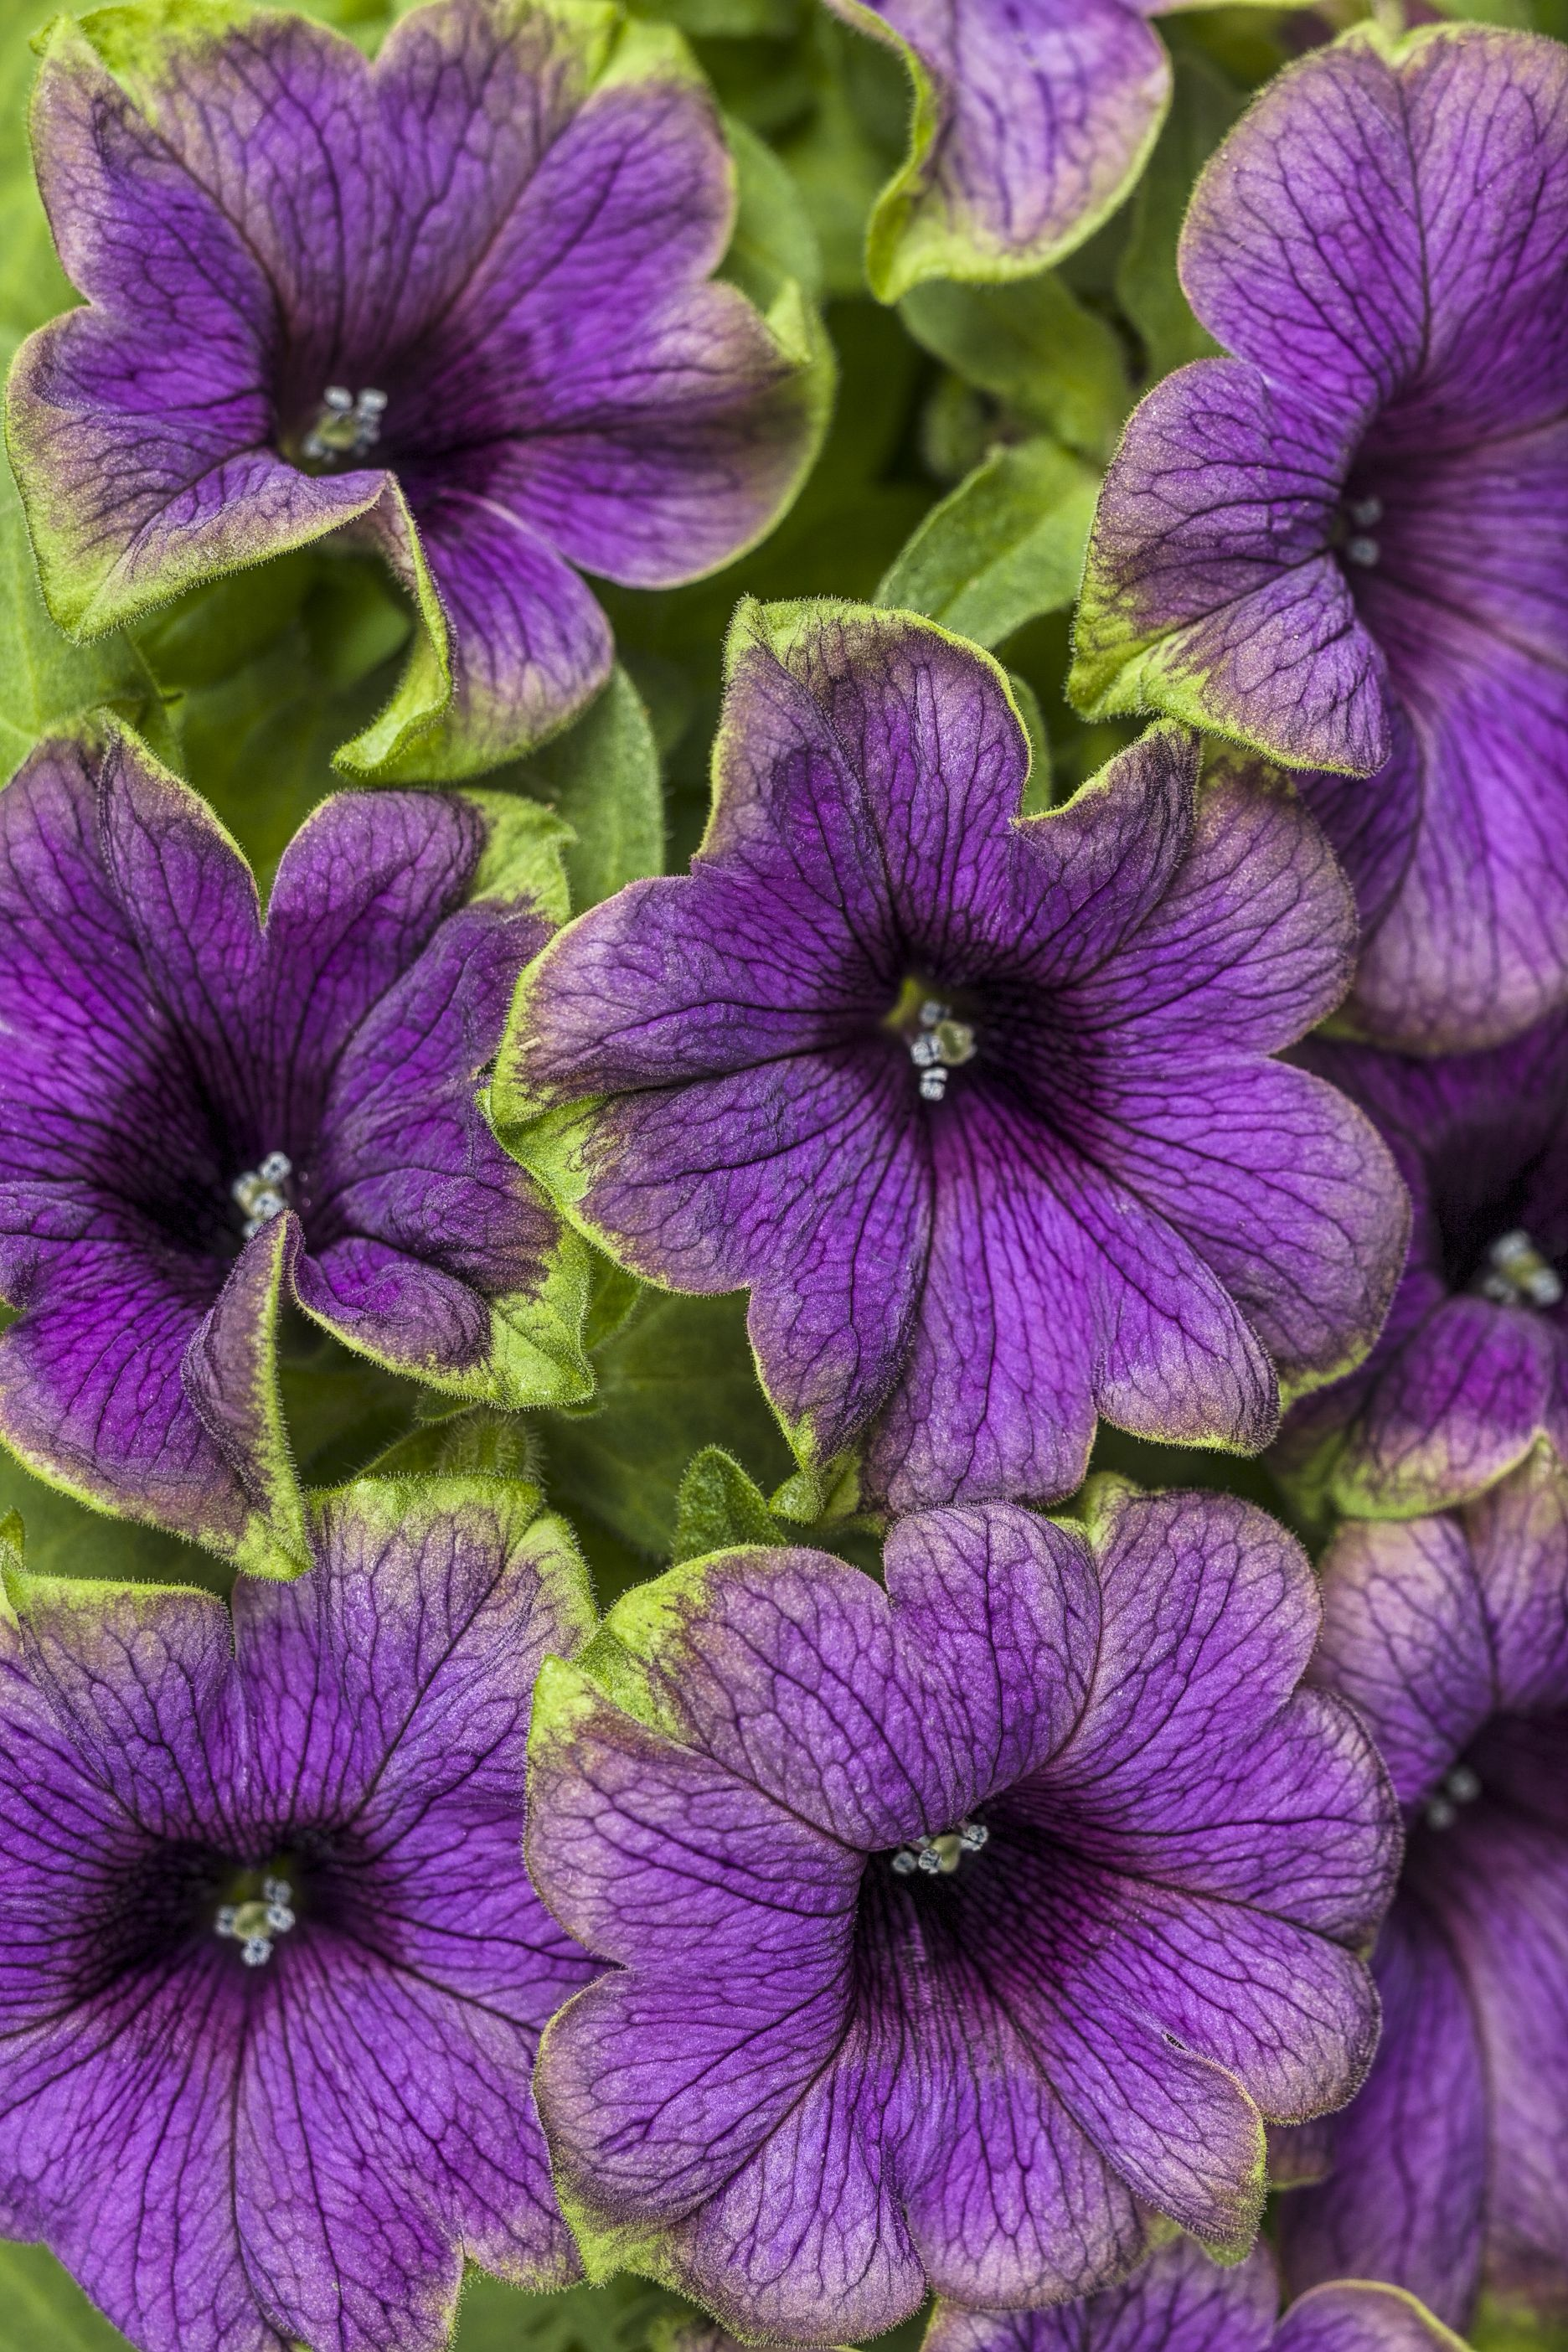 Supertunia Picasso in Blue has deeply colored blooms with